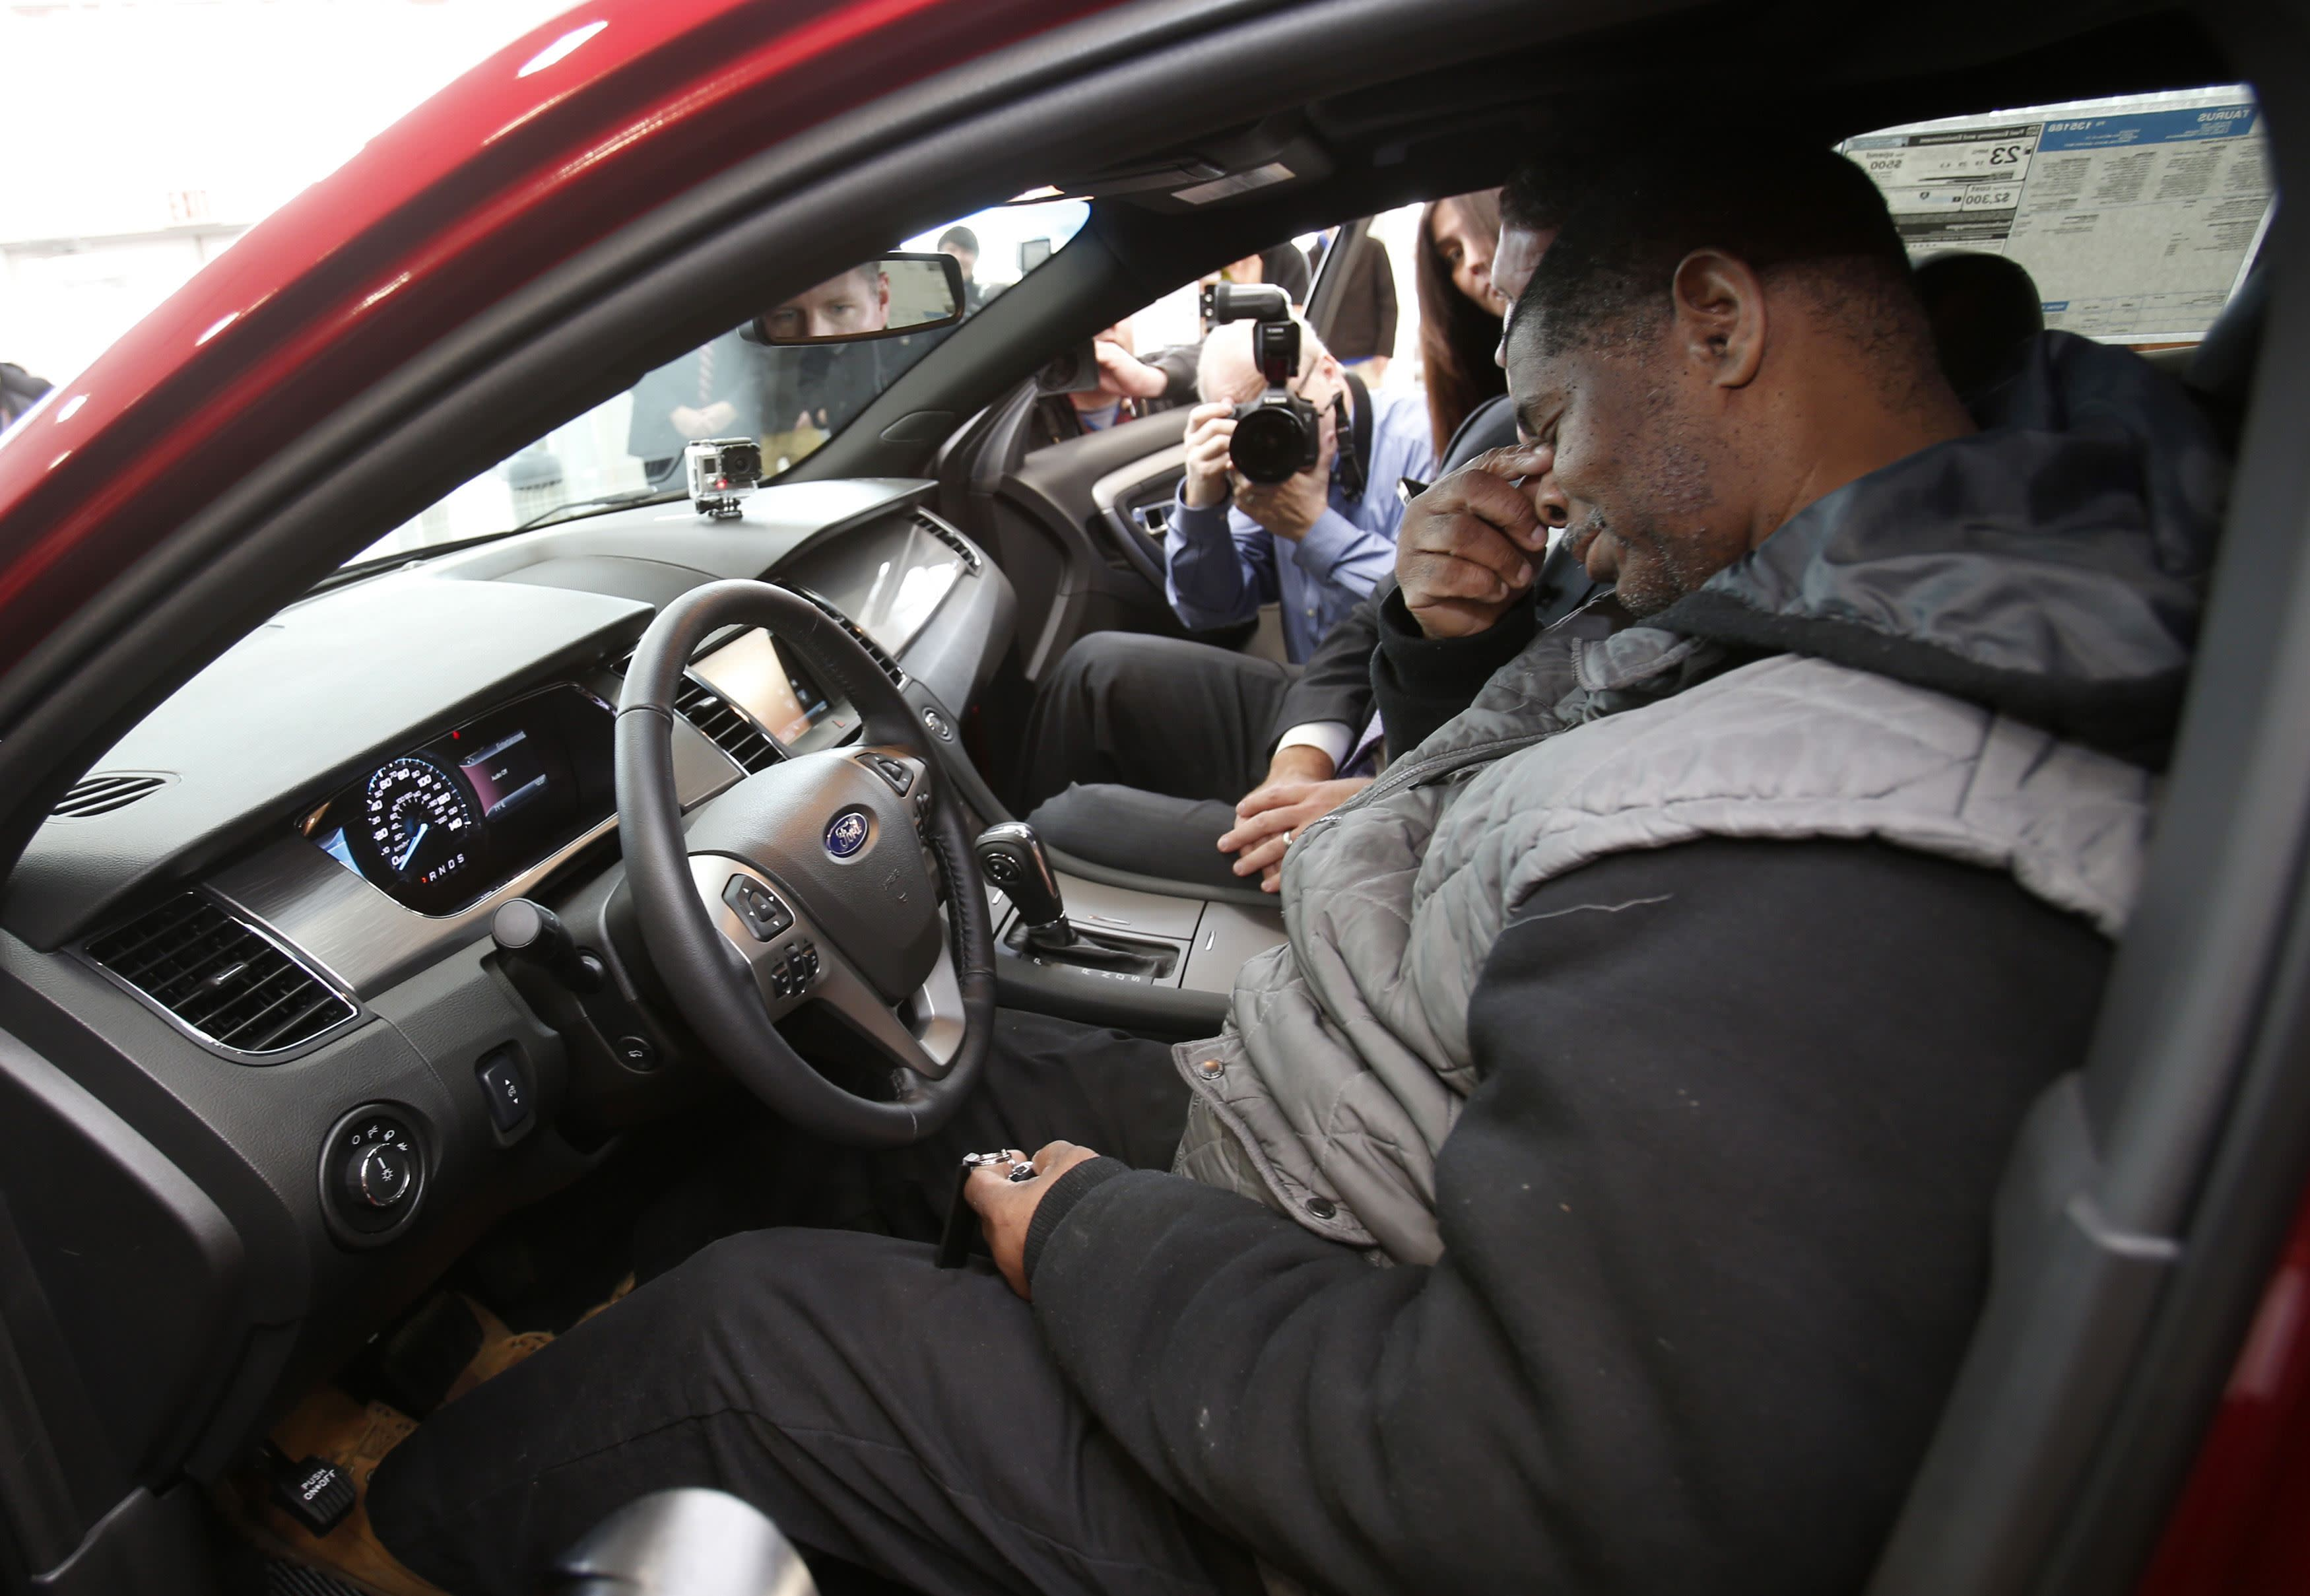 Detroit resident James Robertson sits in the drivers seat of the 2015 red Ford Taurus sedan he was surprised with as a free gift at the Suburban Ford dealership in Sterling Heights, Michigan, February 6, 2015. The 56-year-old factory worker, known for walking 21 miles to get to and from work for 9 years, is also the recipient of about $300,000 in donations raised by a college student after his story was widely publicized in local media. REUTERS/Rebecca Cook (UNITED STATES - Tags: TRANSPORT SOCIETY)